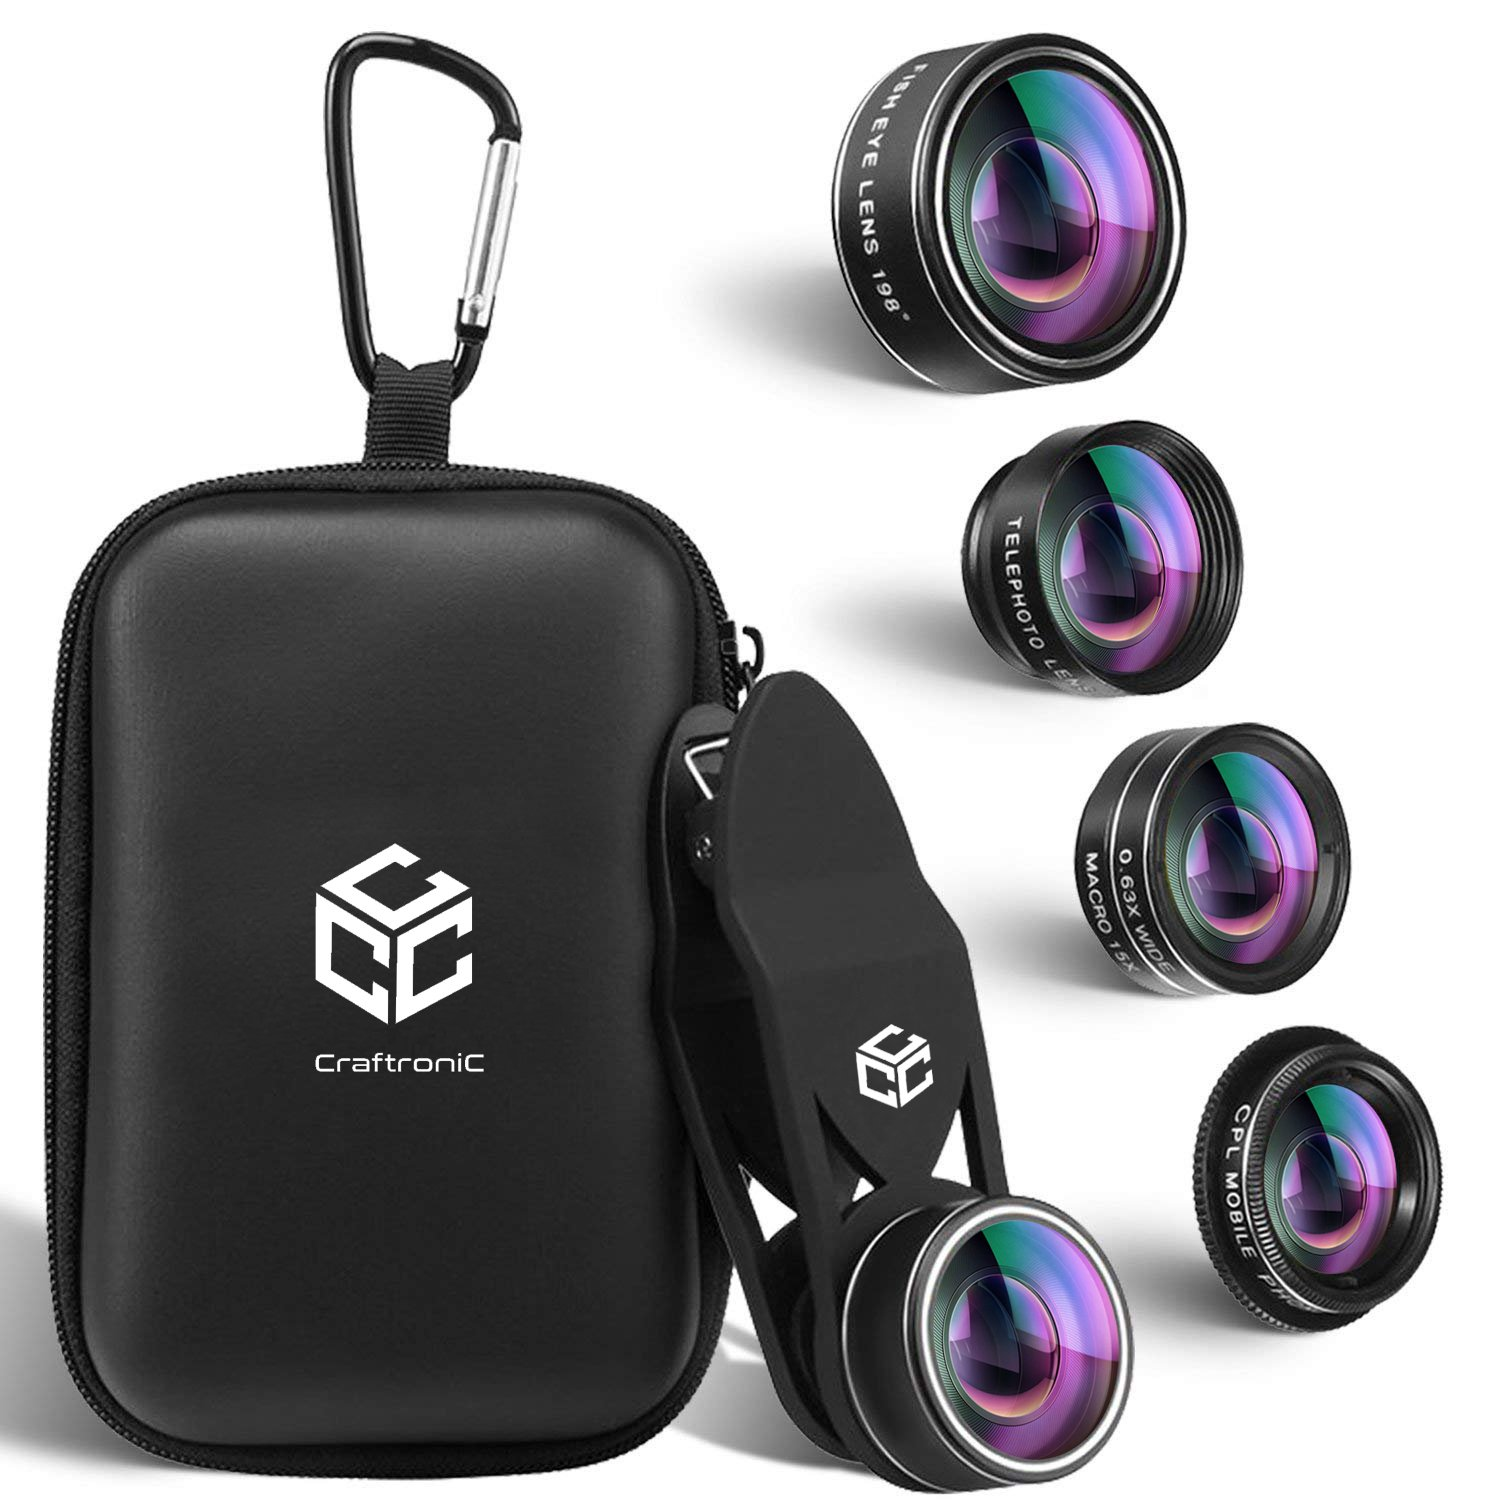 5 in 1 Mobile Camera Lens Kit - Universal Set for iPhone, Samsung, Tablets - 2X Zoom Telephoto, 198° Fisheye, 0.63X Wide Angle, 15X Macro & CPL Filter Lens for Cell Phones with Travel Case